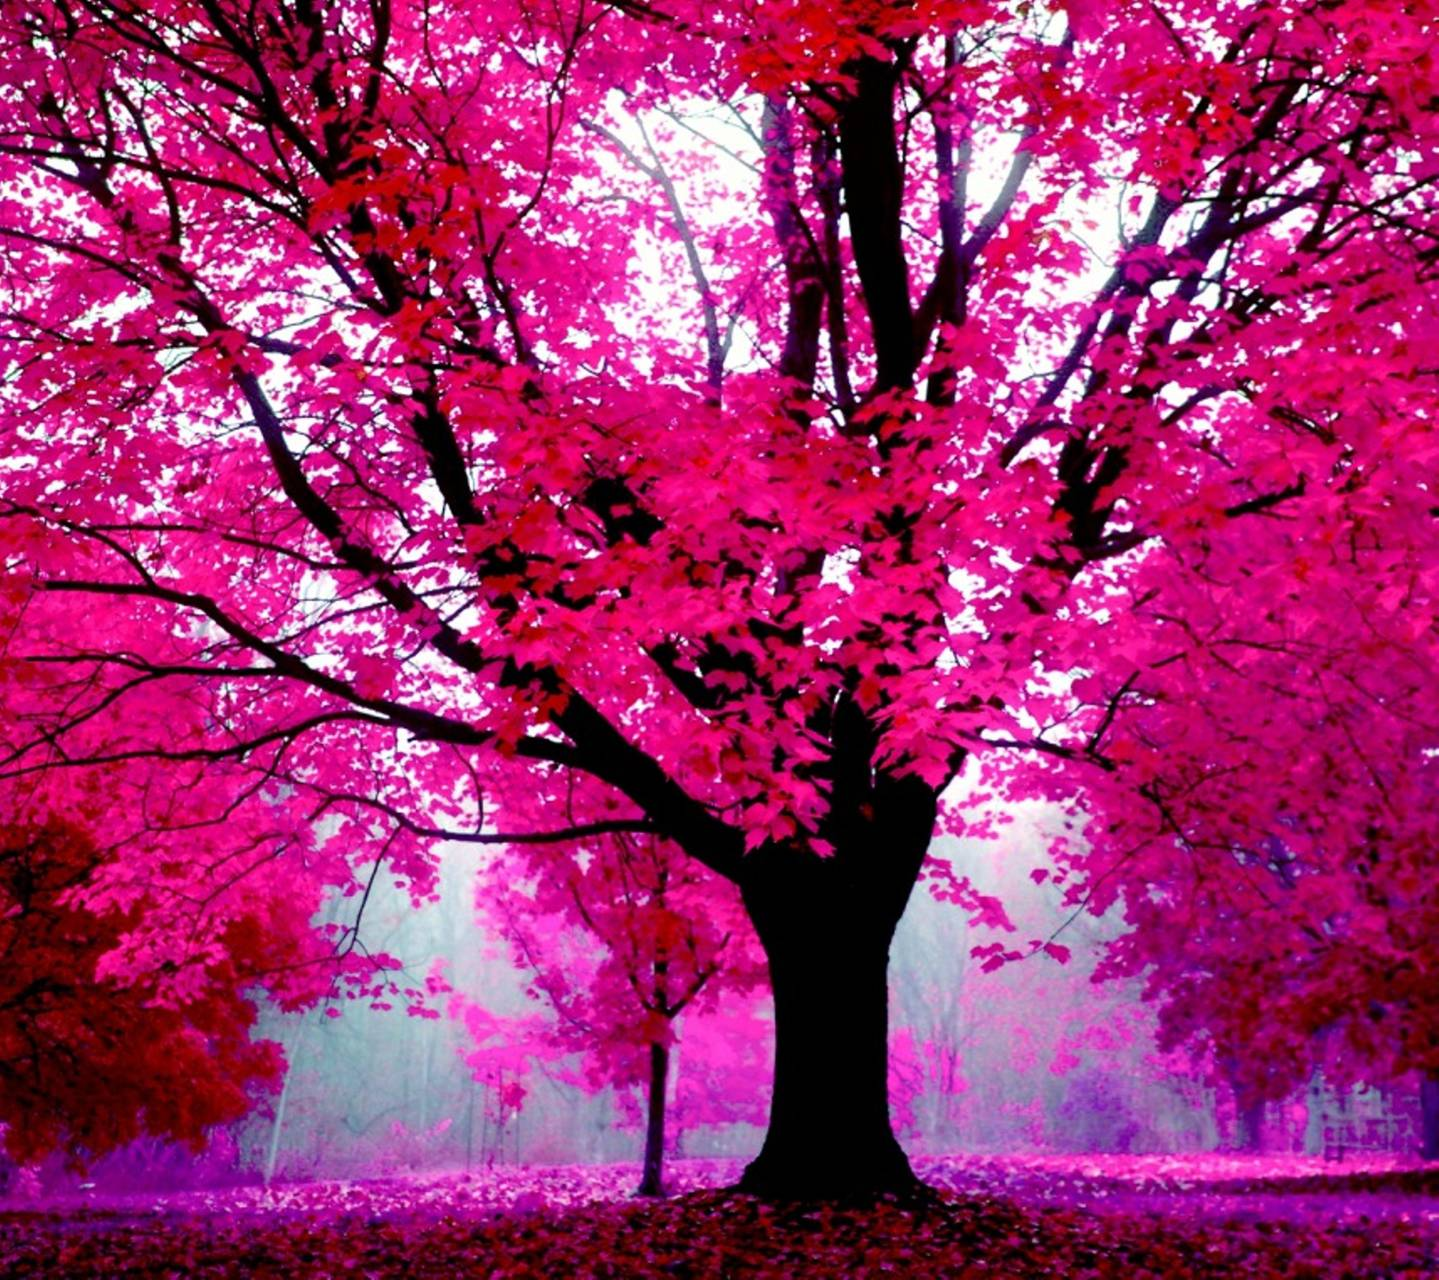 Nature in Pink